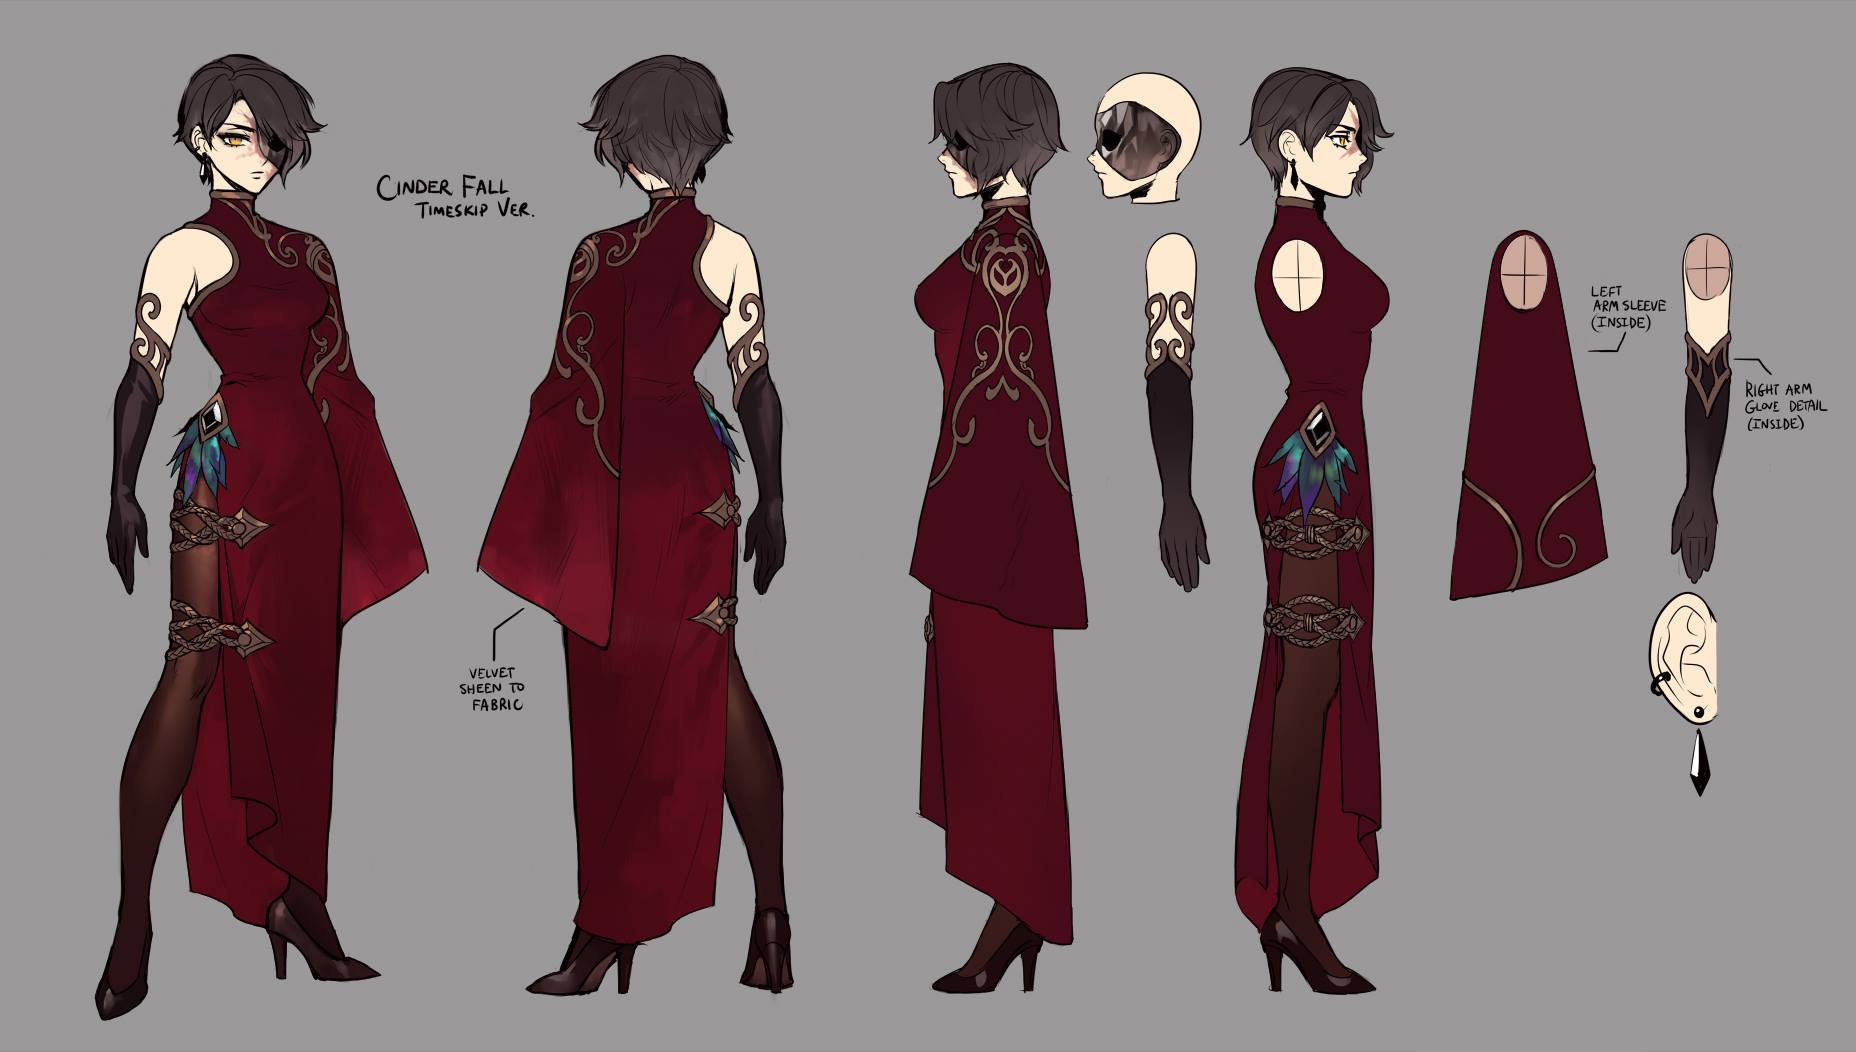 2 besides Watch also Ruby Rose furthermore Gtp Cool Wall 1971 1973 Buick Riviera likewise Concept Art For Rwby Dark Au Fictionmore. on emerald rwby vol 4